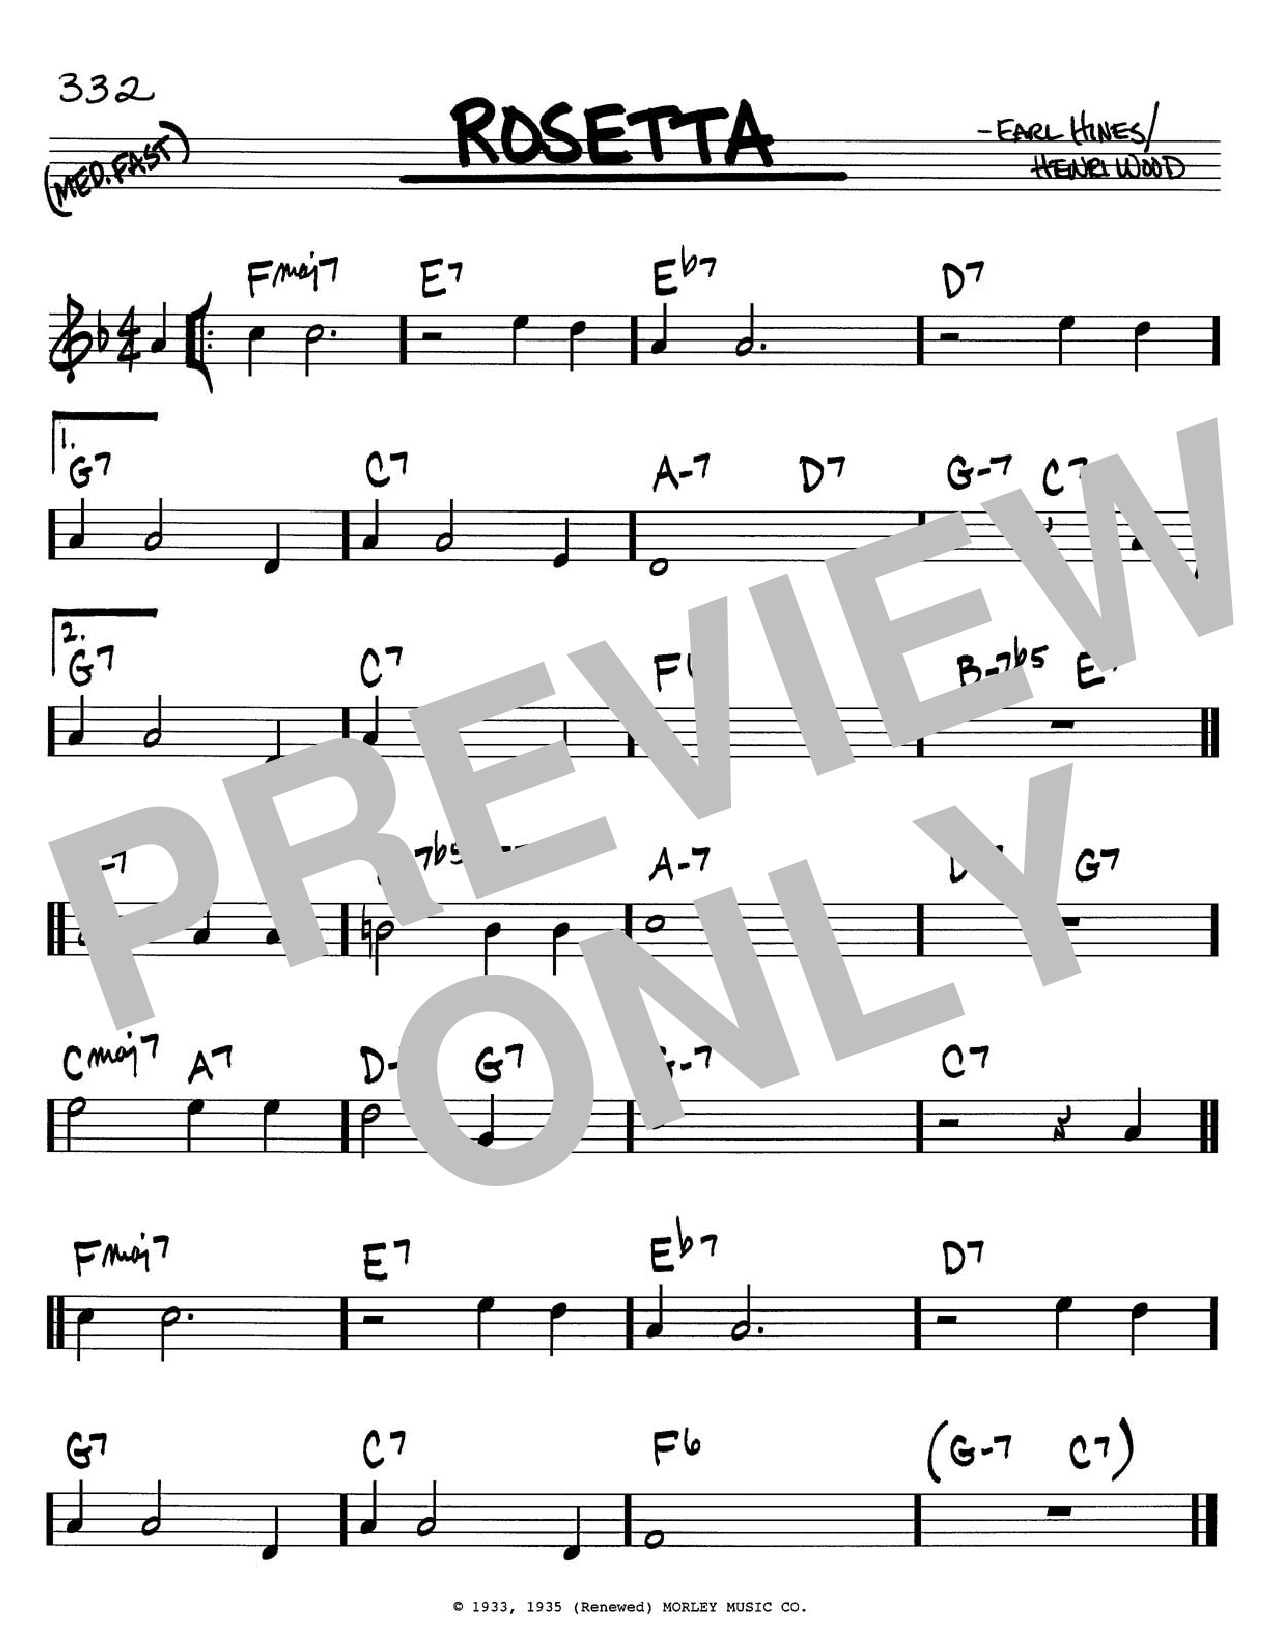 Earl Hines Rosetta sheet music notes and chords. Download Printable PDF.